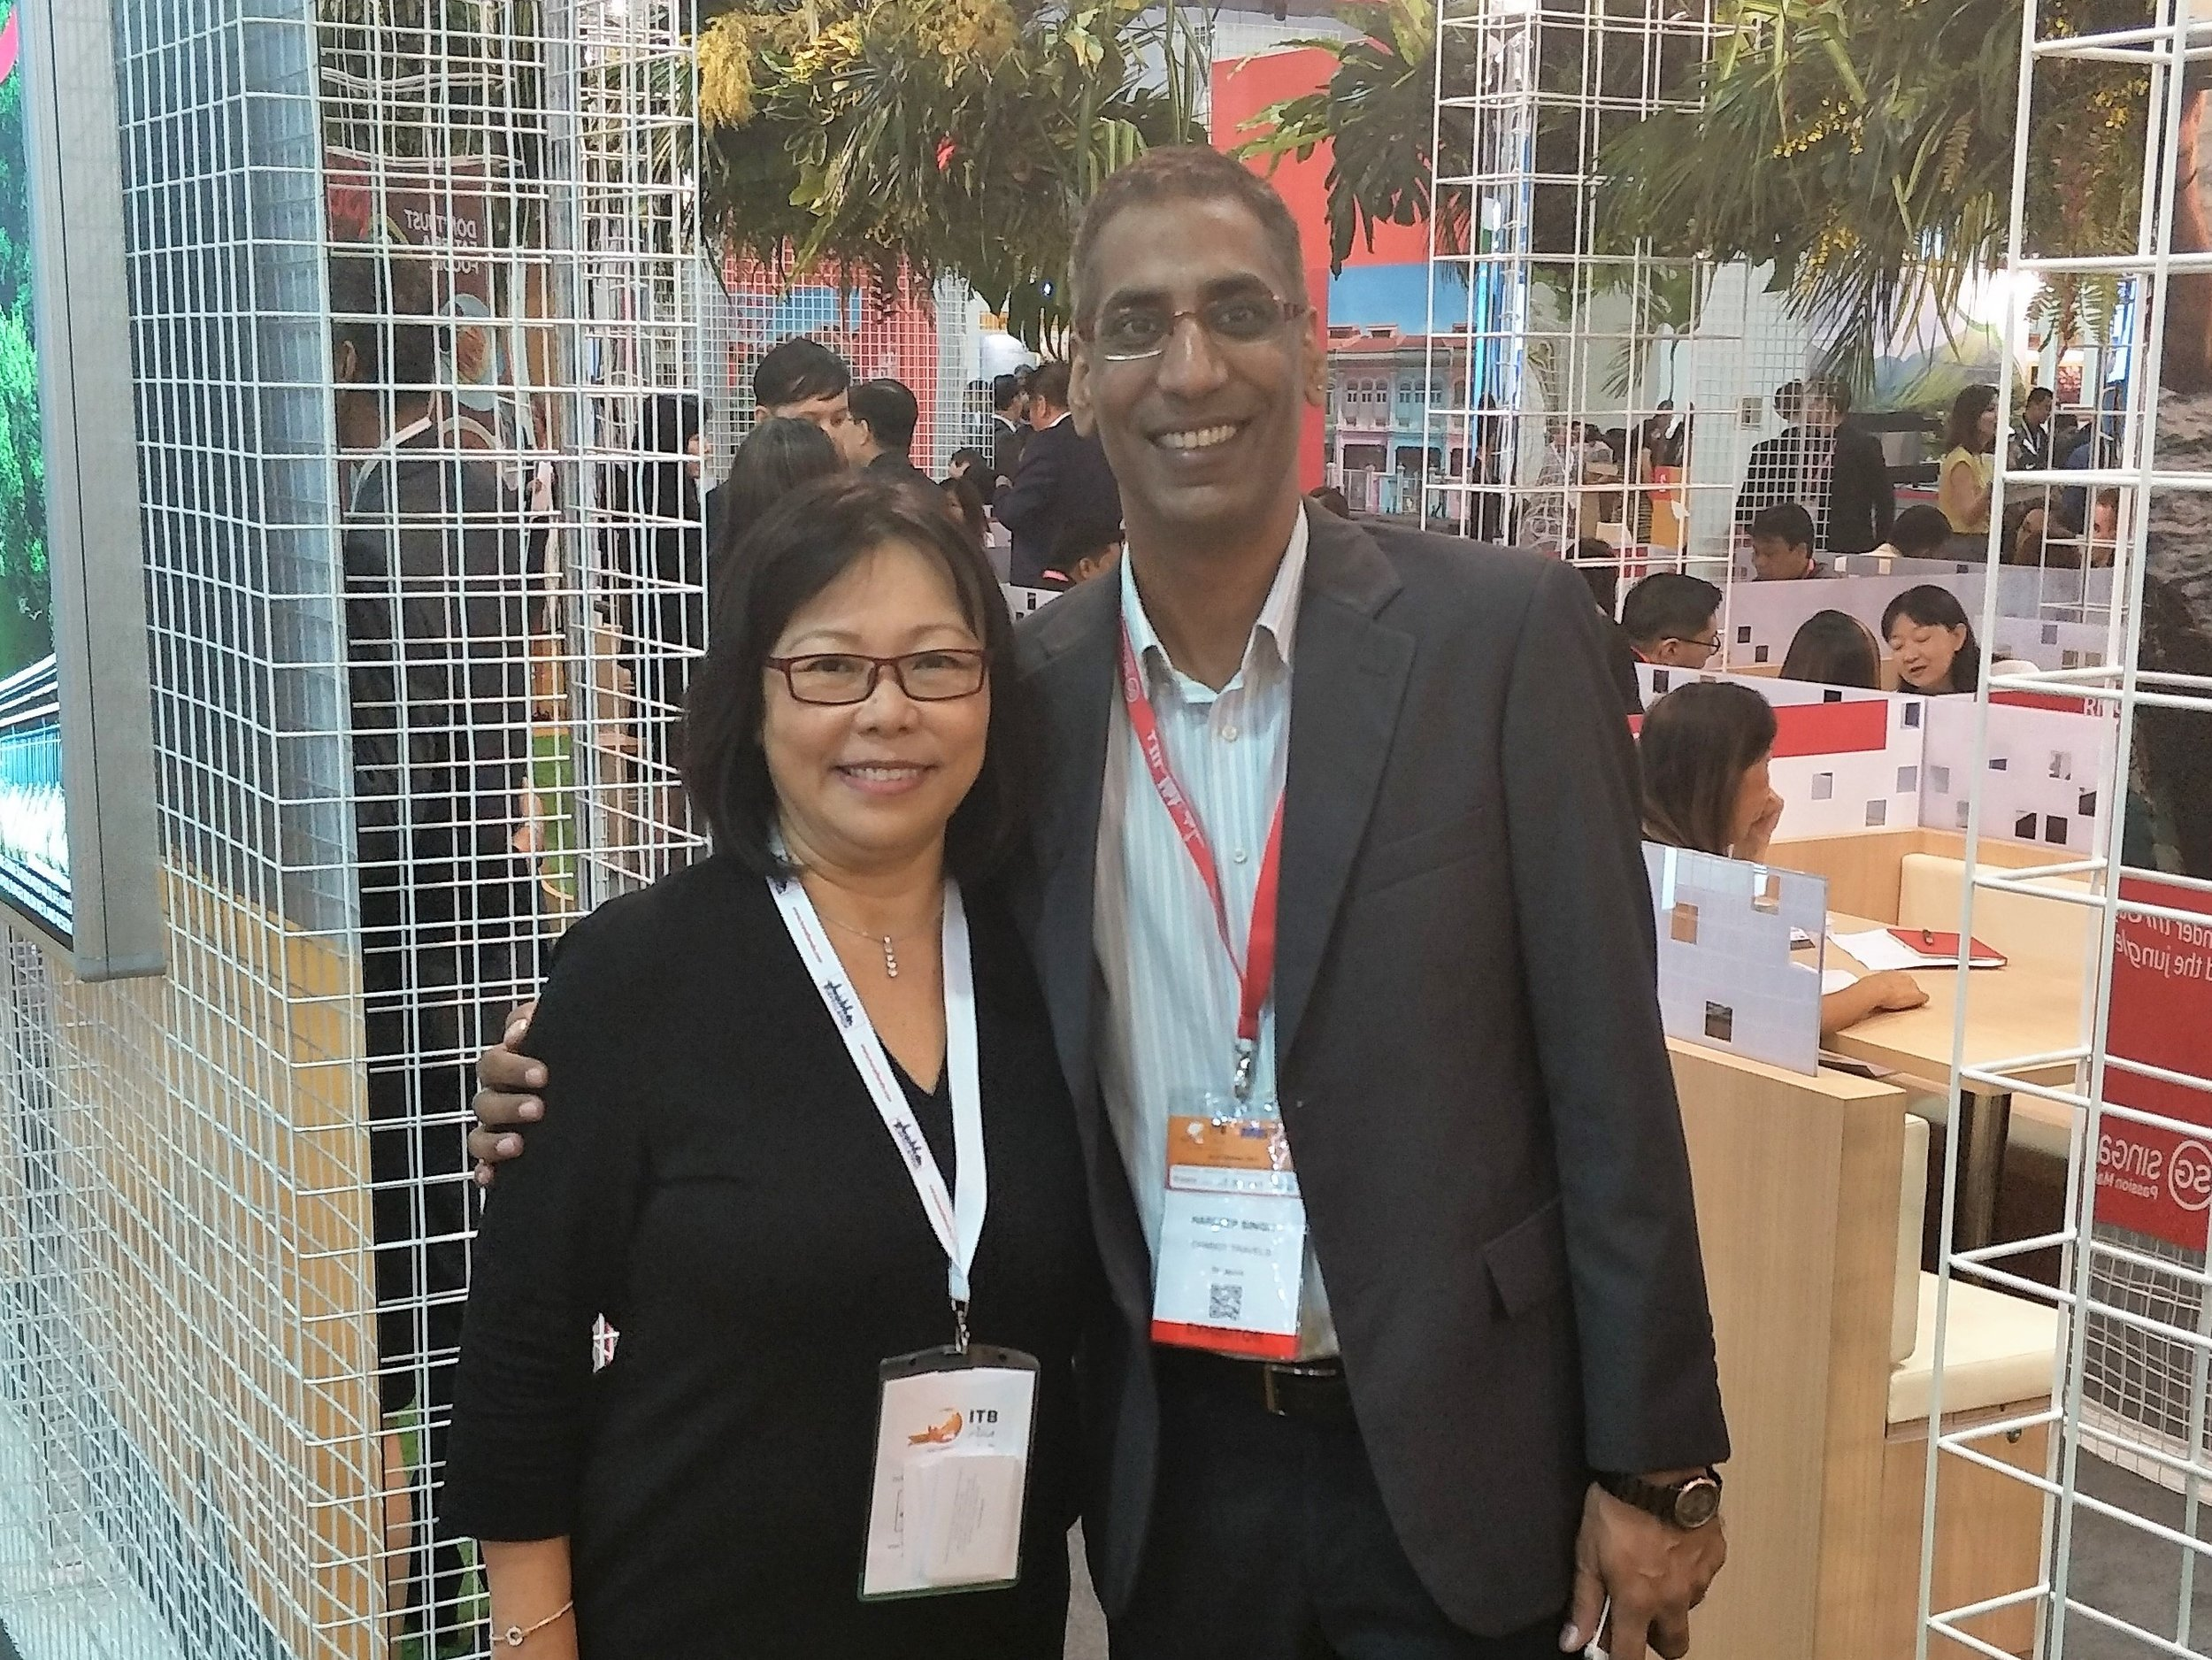 From left to right:  Ms Serene Law (VP, FLA), Mr Hardeep Singh (Director of Sales Operations, Chariot Travels Pte Ltd Singapore).